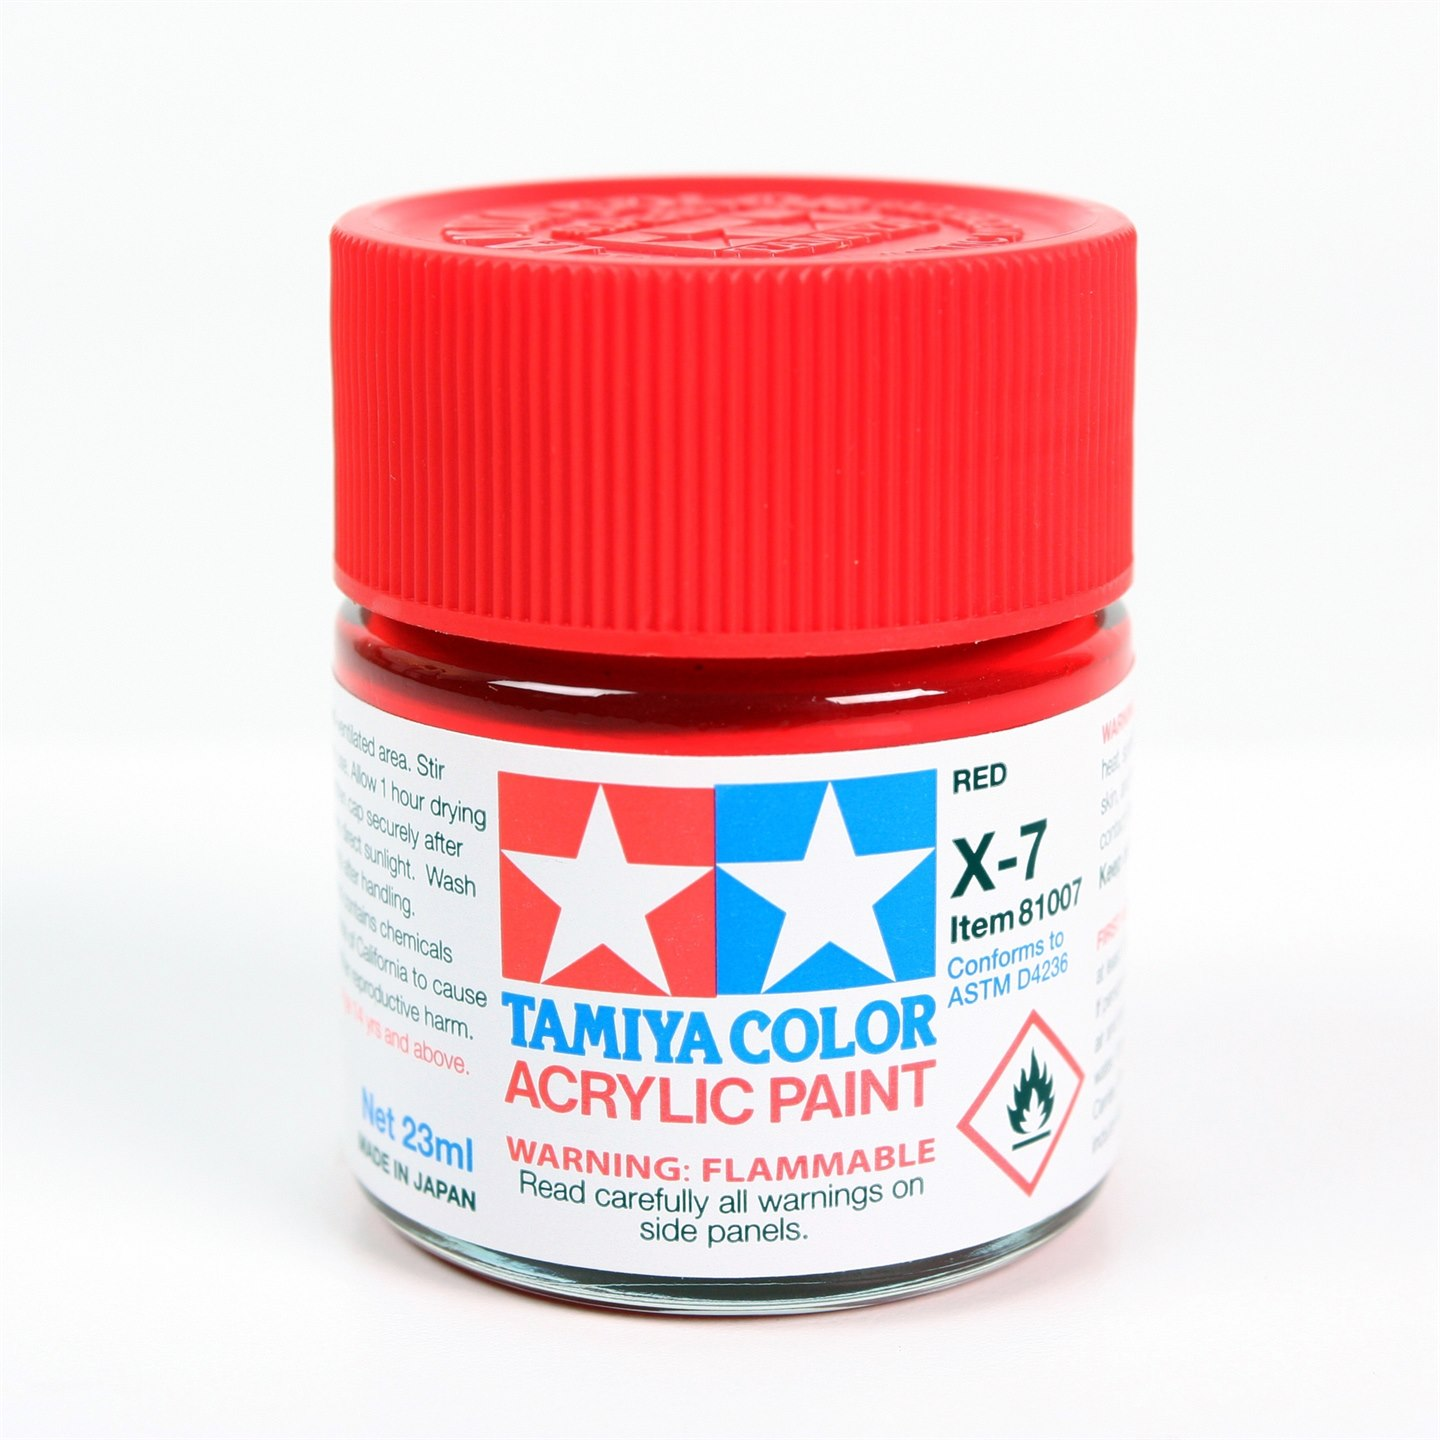 Tamiya Color Acrylic Paint X-07 (Red) (23ml)